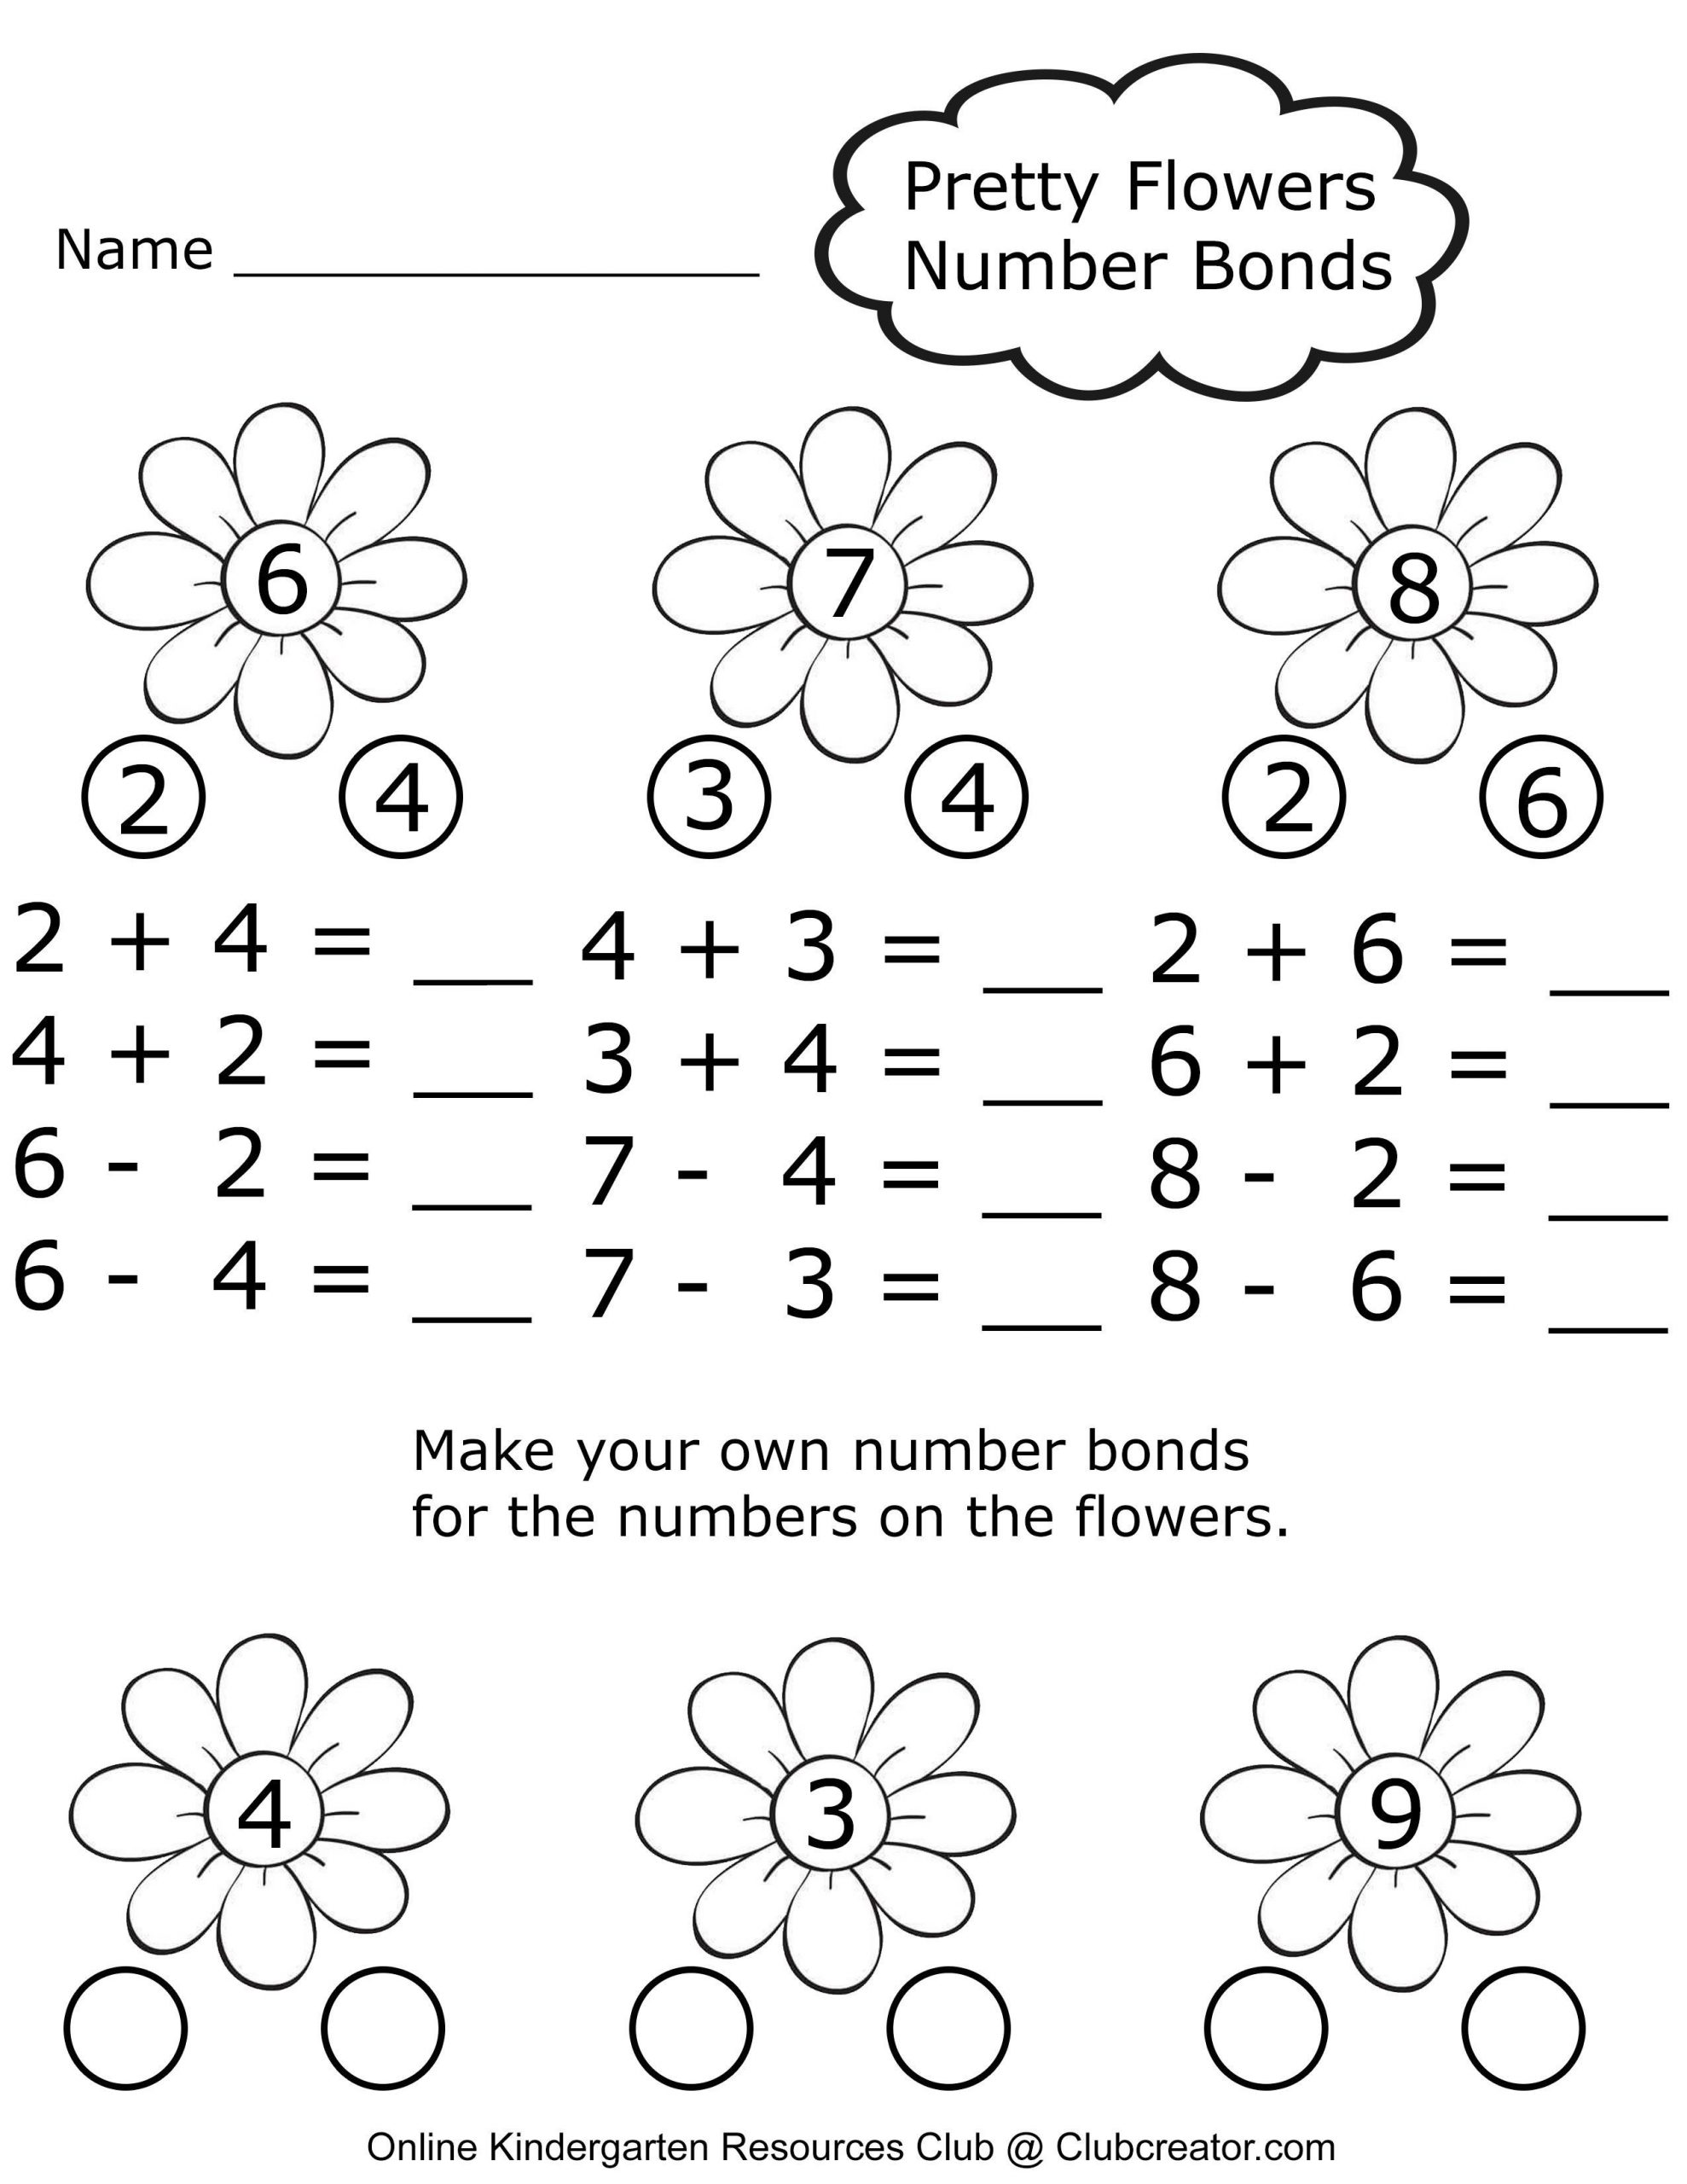 30 Kindergarten Number Bond Worksheets